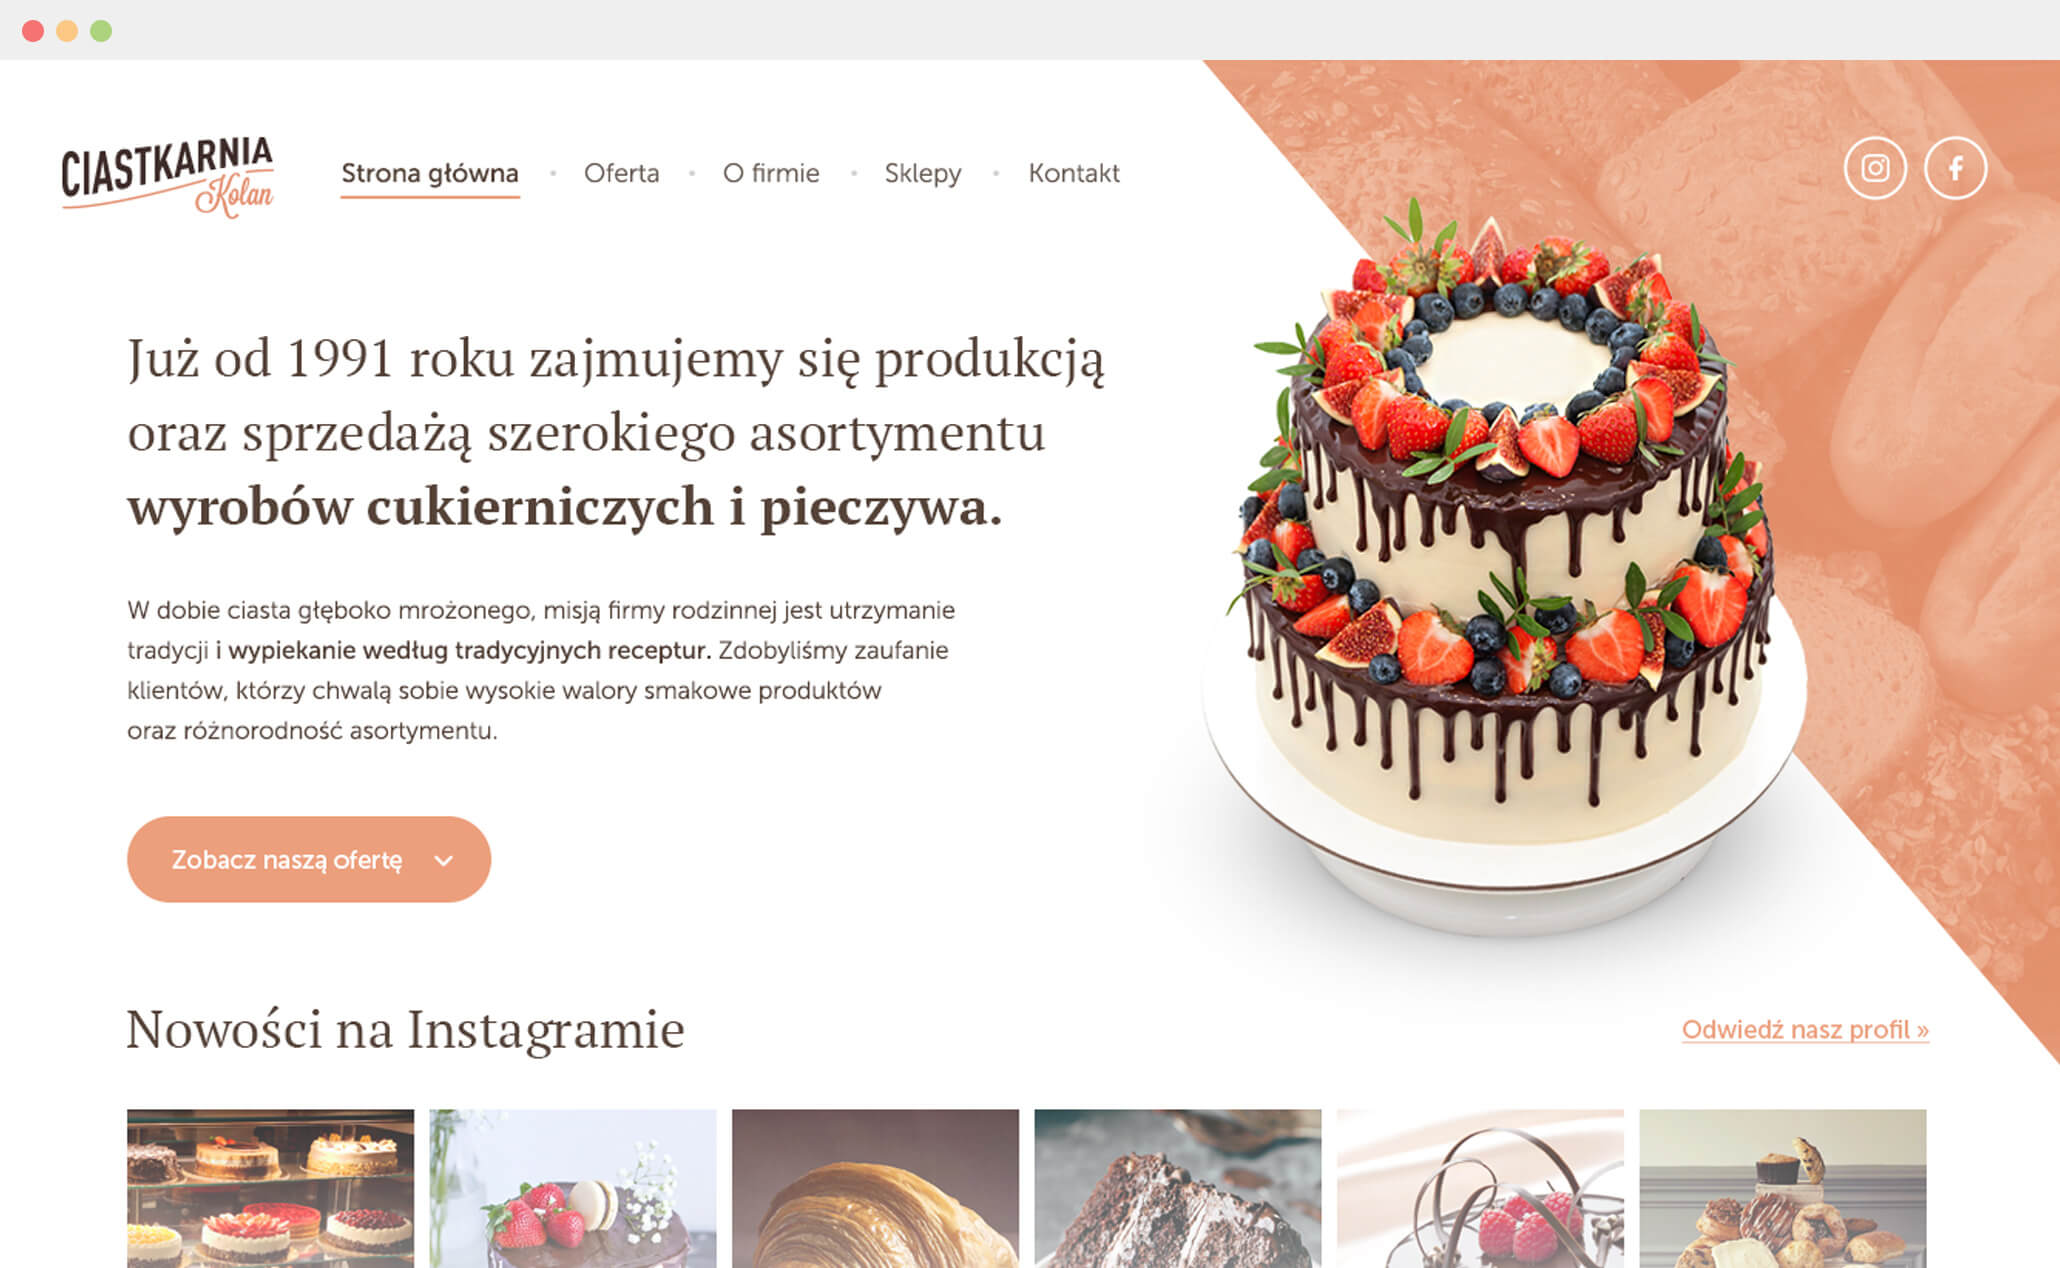 Ciastkarnia Kolan website